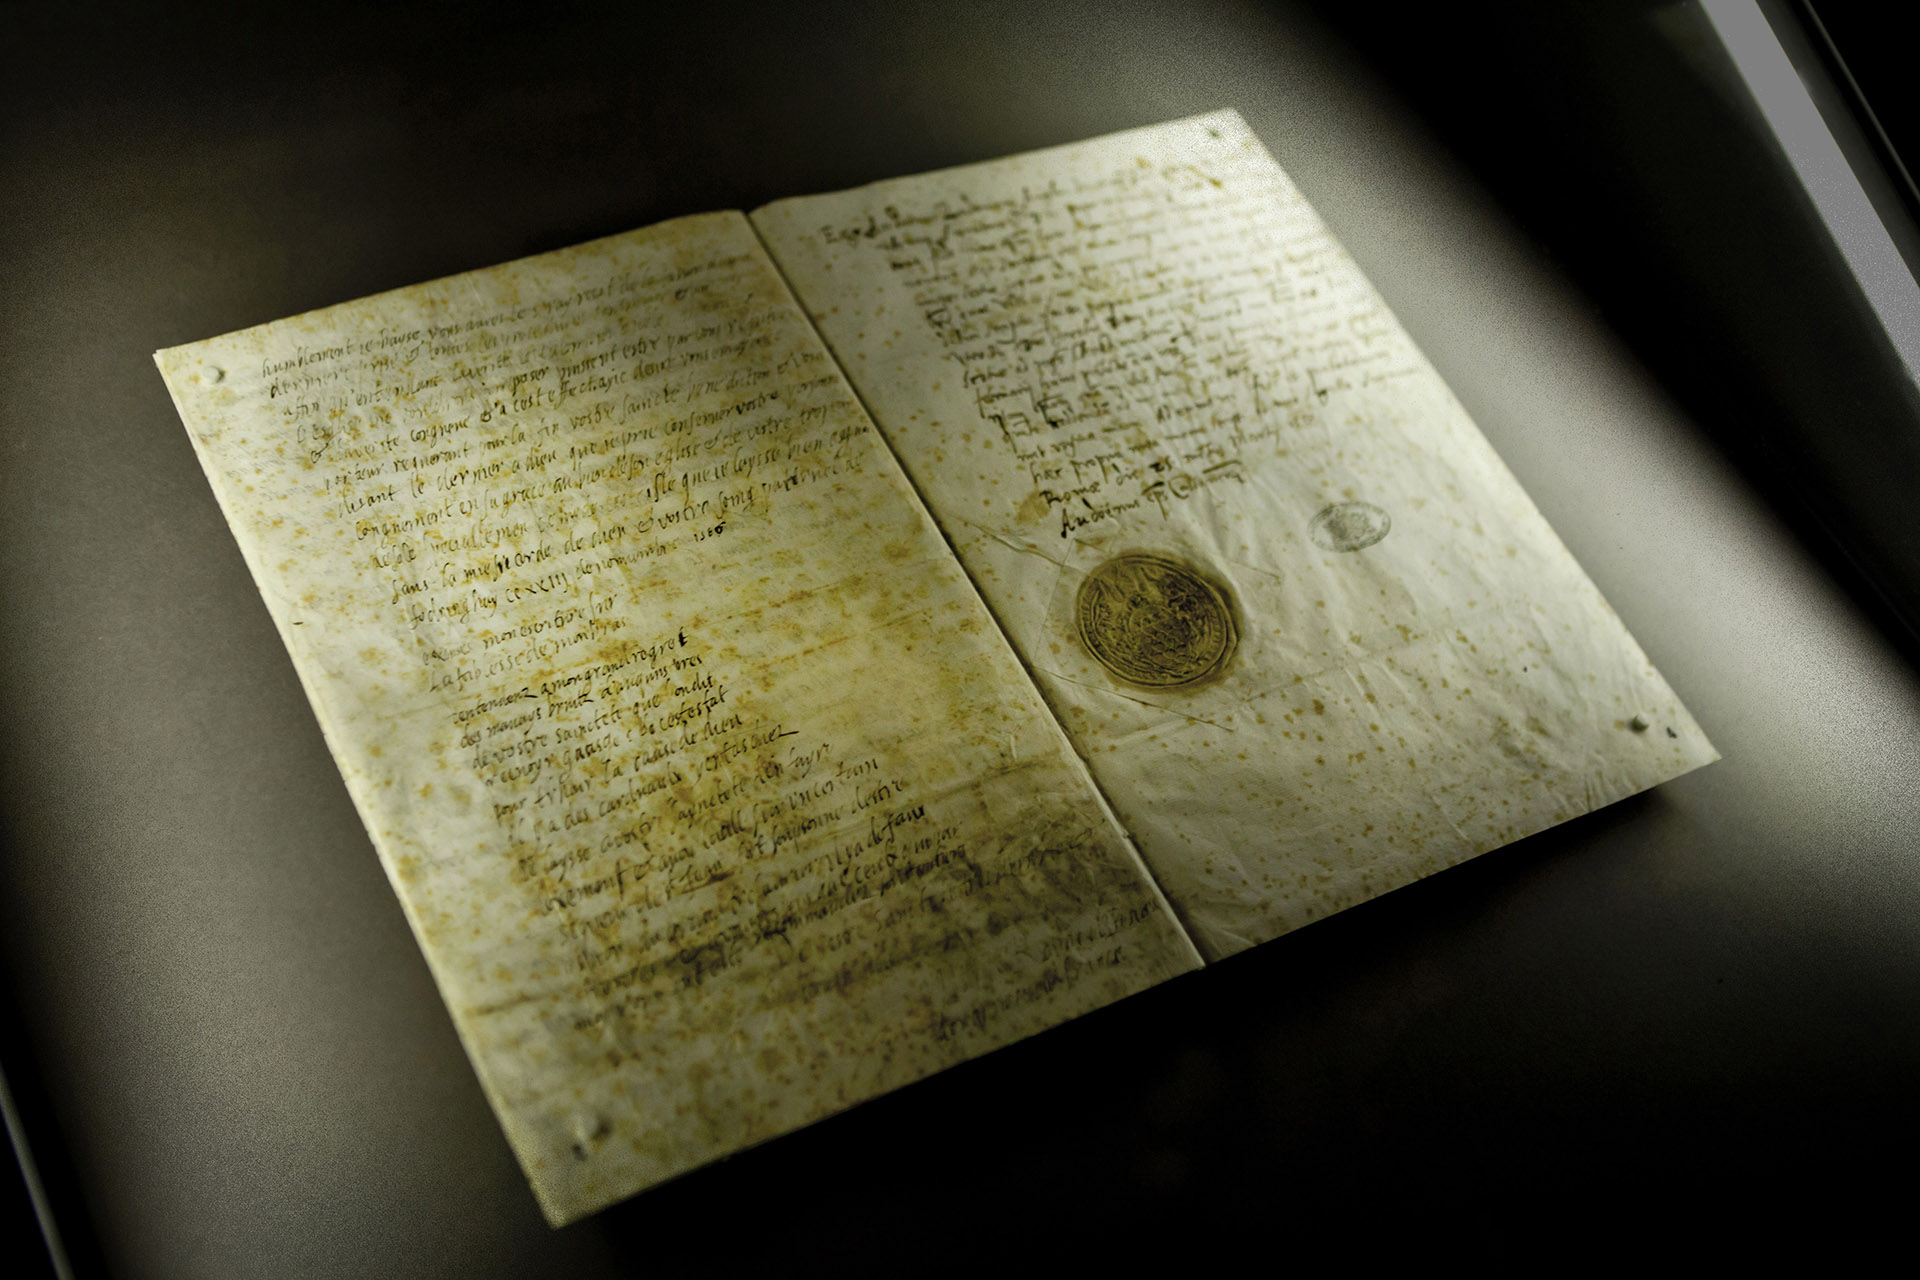 Last letter from Mary Queen of Scots to Pope Sixtus V in an exhibition of documents from the Vatican Secret Archives, 2012. (Credit: Rex Features via AP Images)